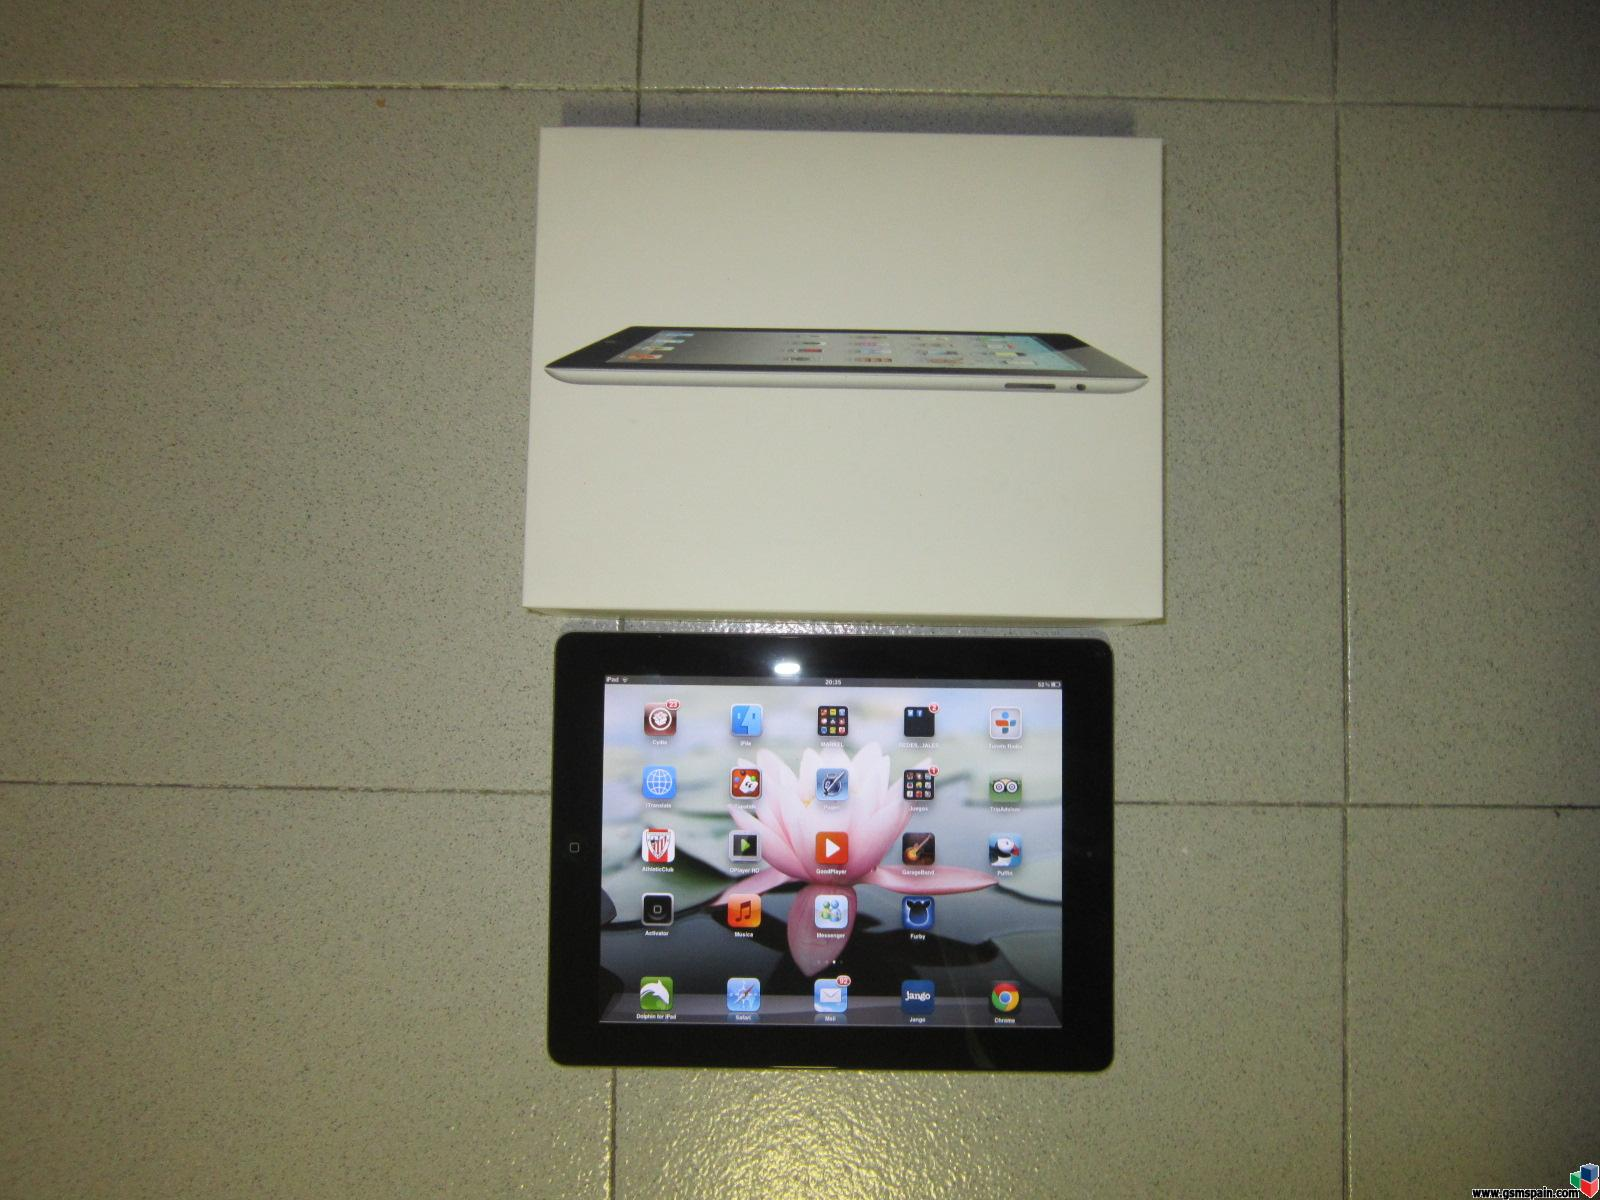 [VENDO] Ipad 2 16gb wifi,color negro